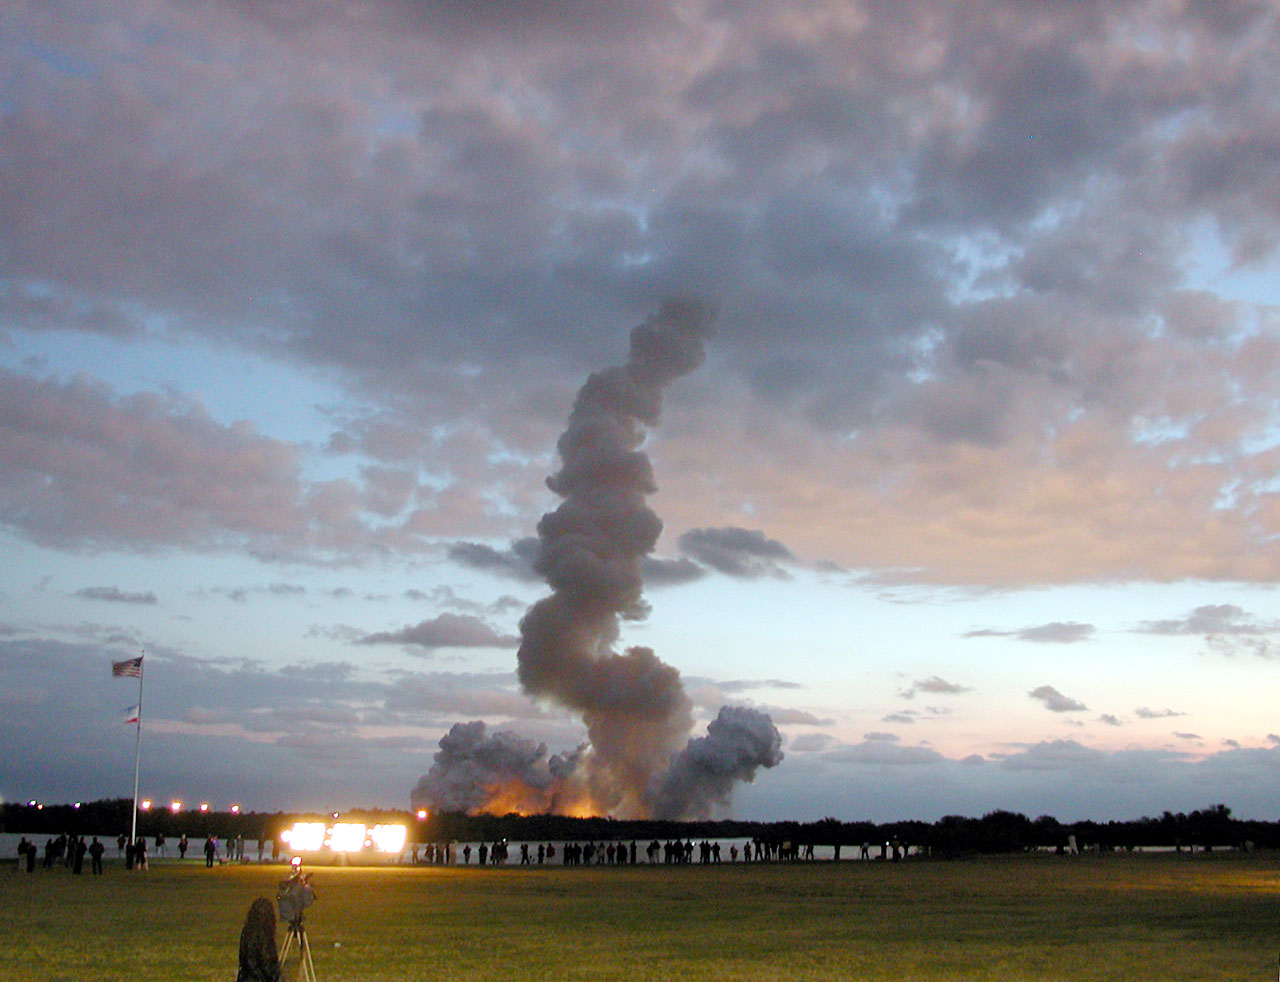 SM3B - A trail of smoke marks the path of the Space Shuttle Colombia